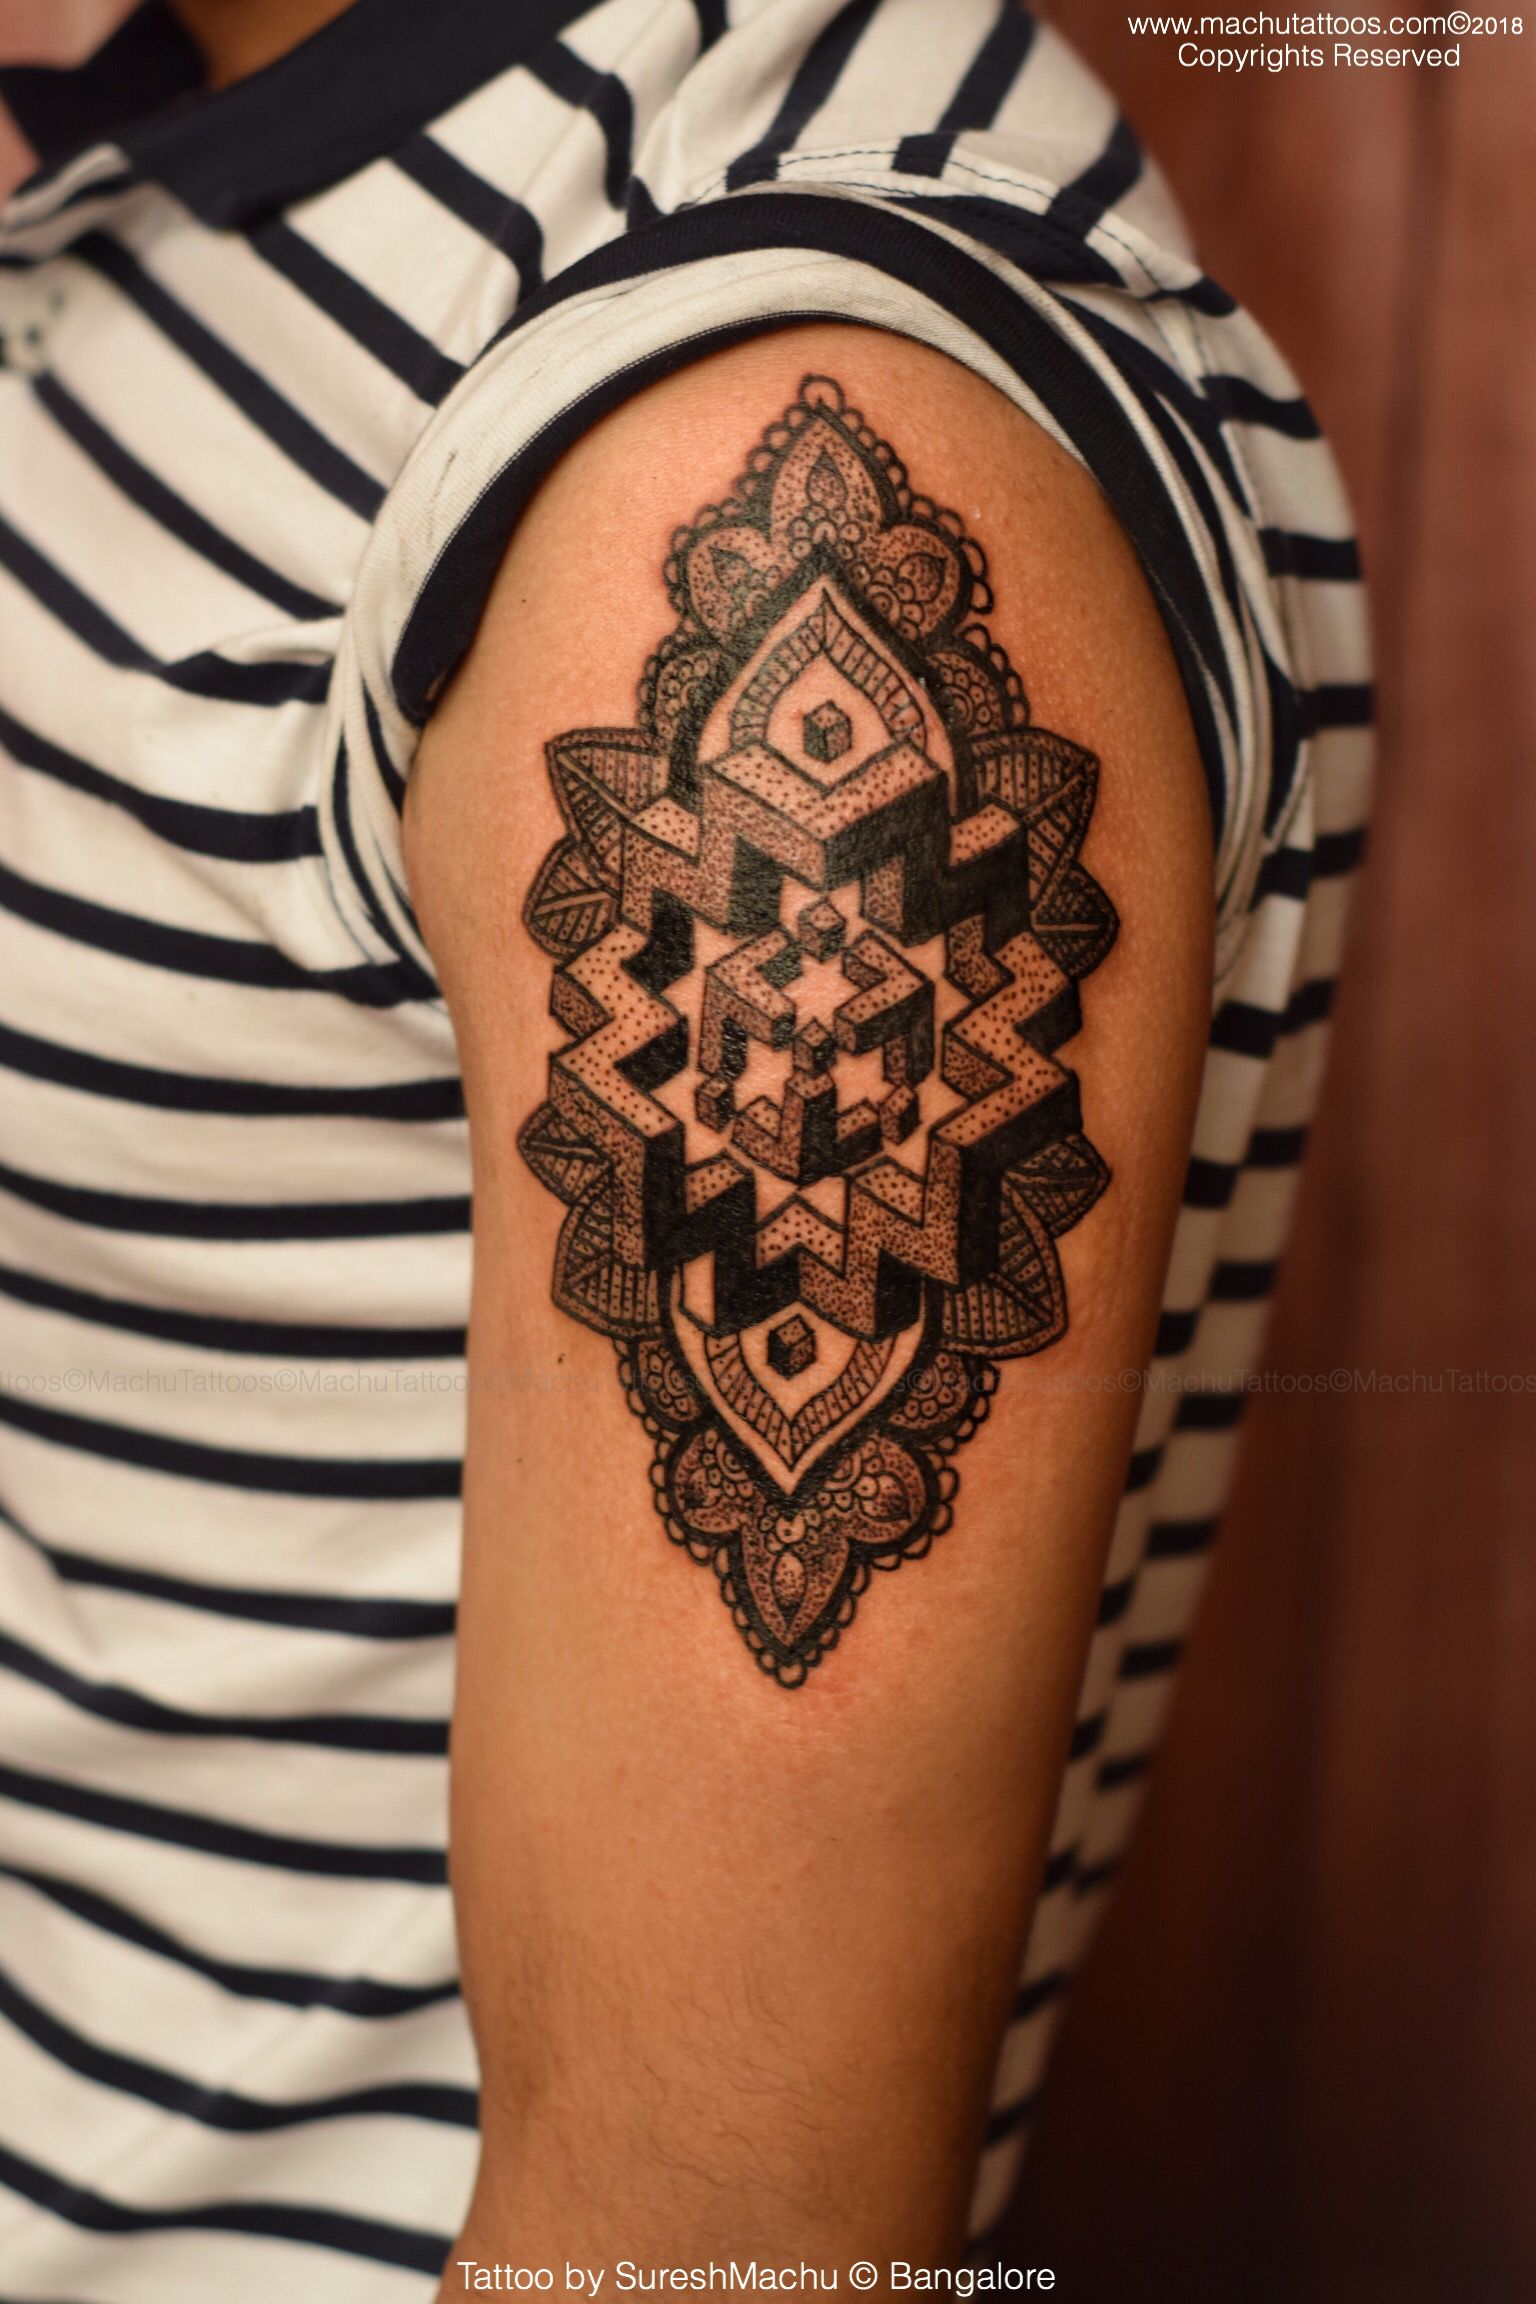 Mandala tattoo work by suresh machu from machu tattoo